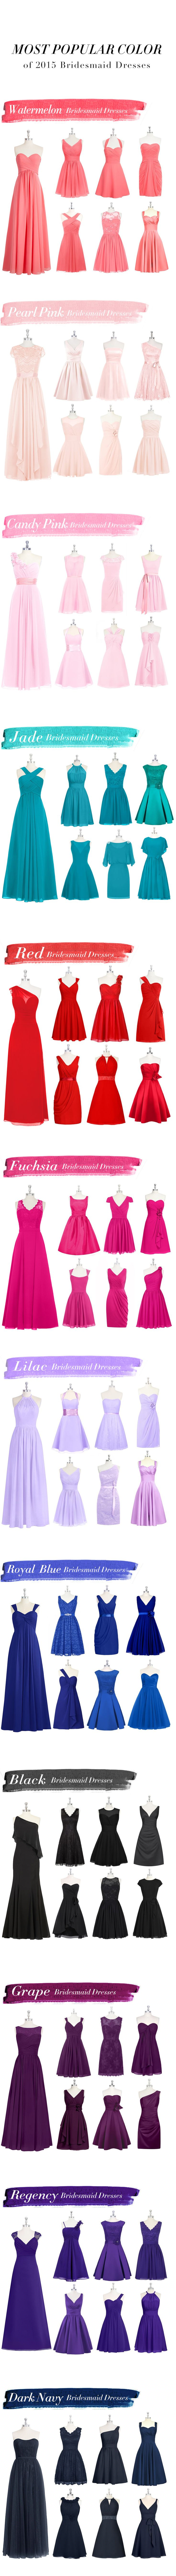 Most Popular Bridesmaid Dresses of 2015 By Azazie.